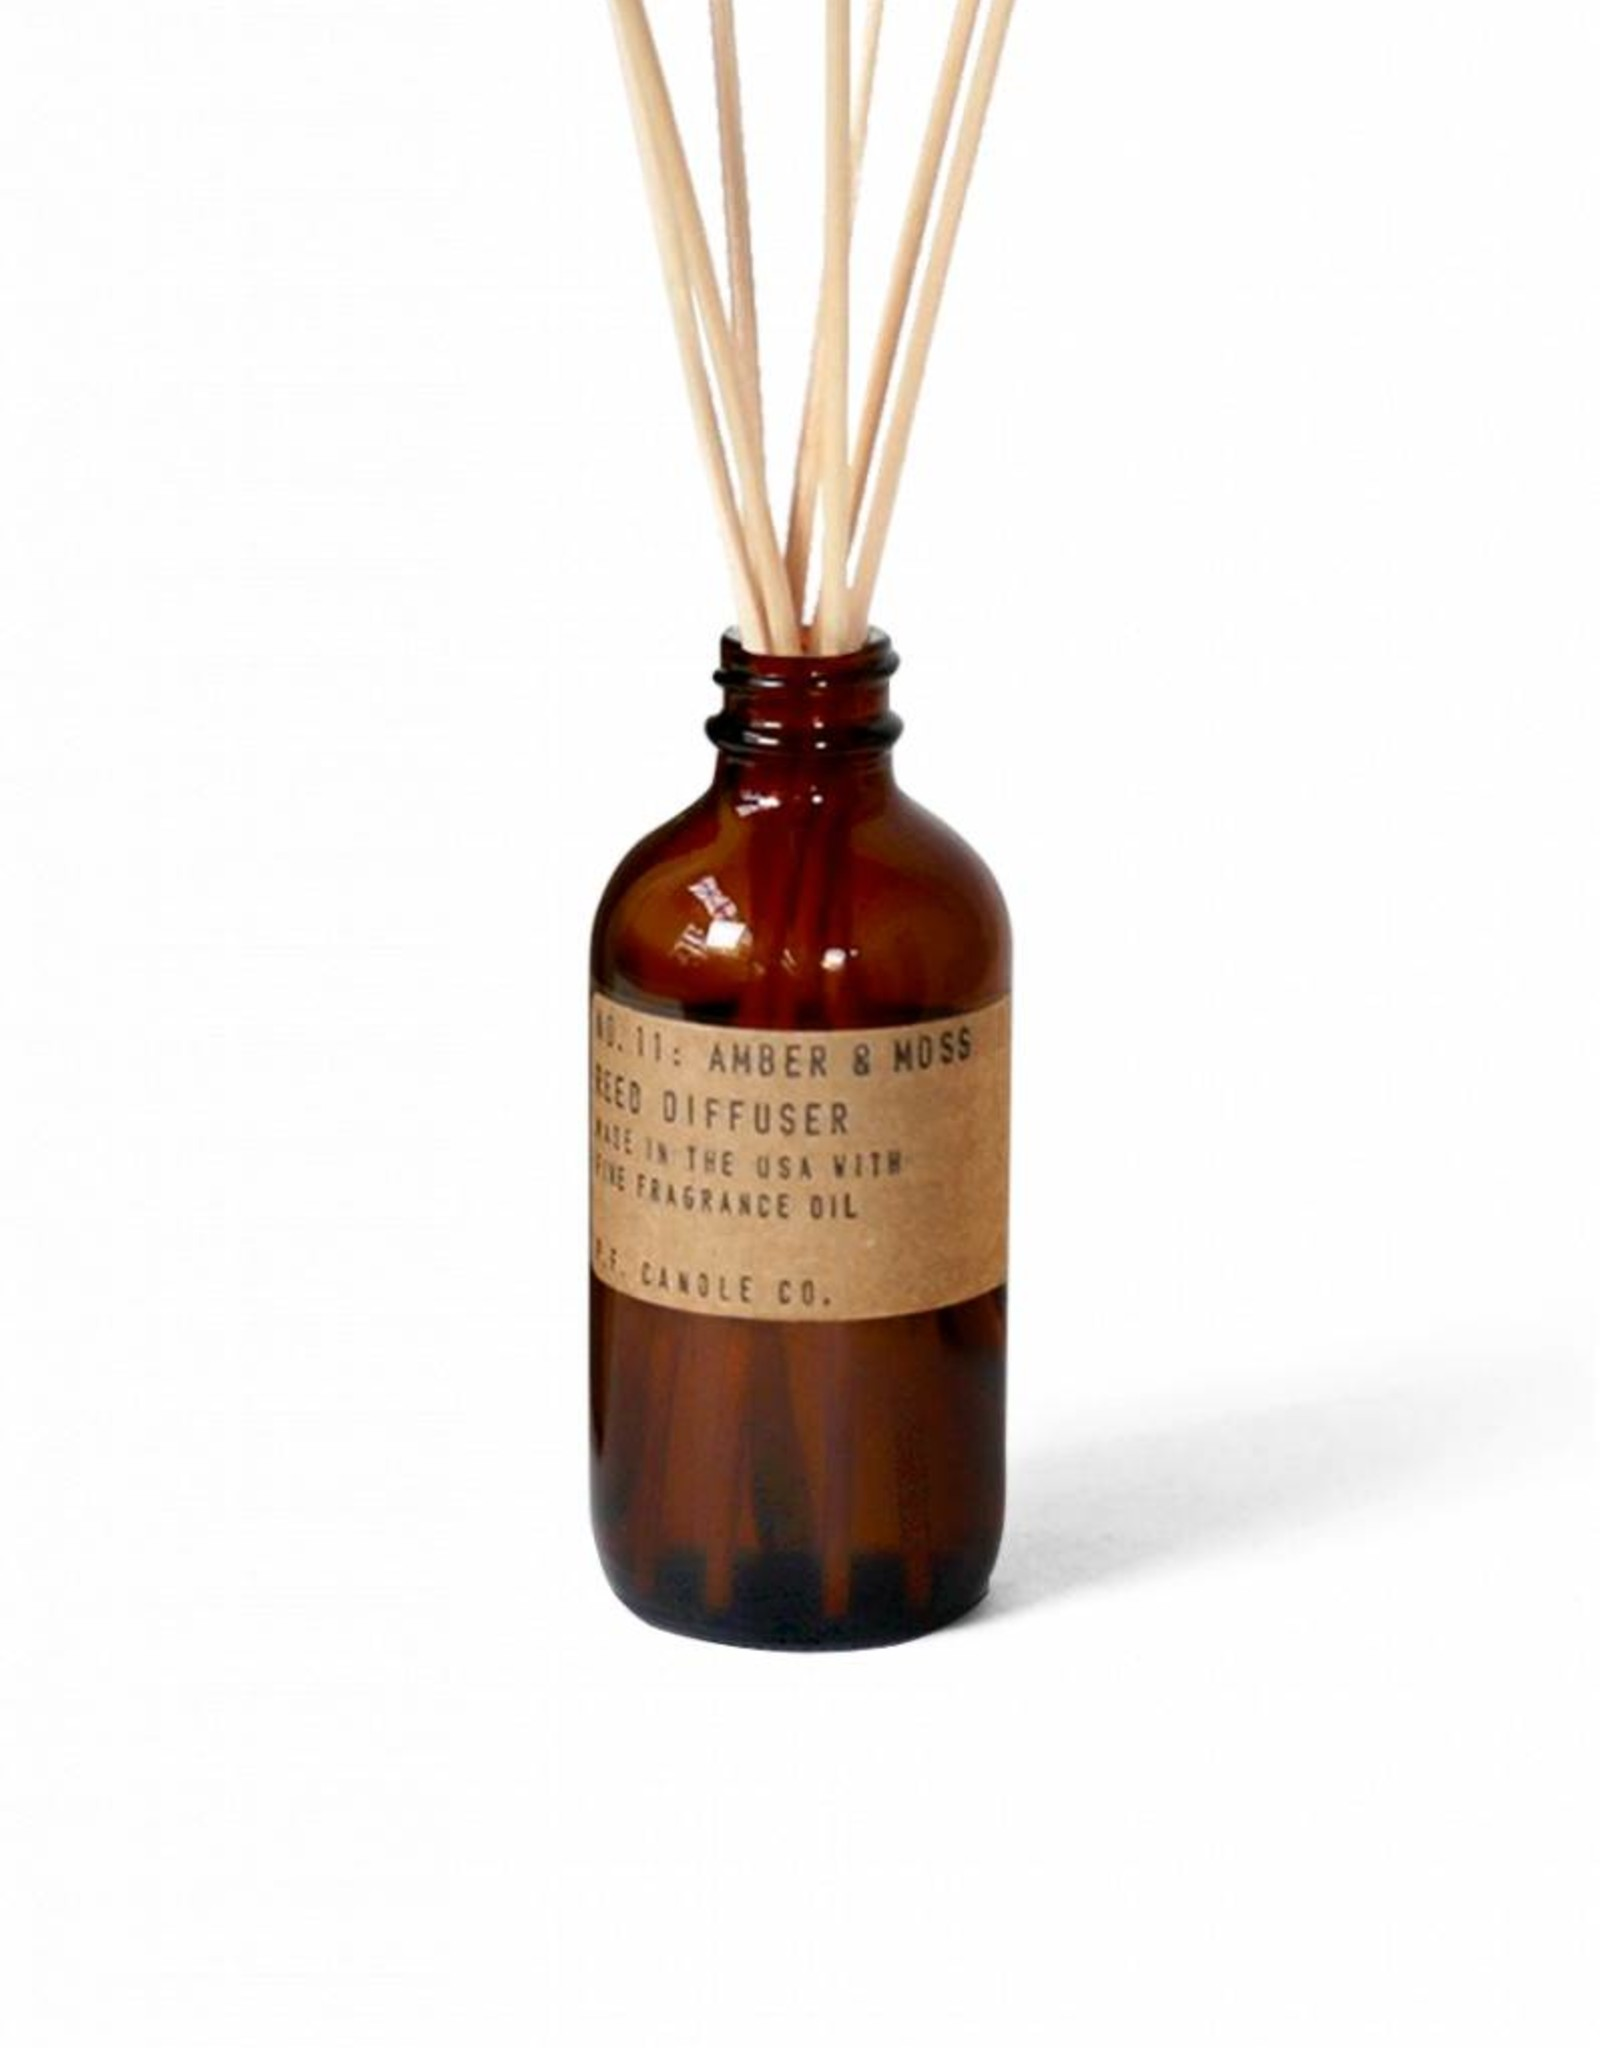 P.F. candle co PF - Amber & Moss diffuser